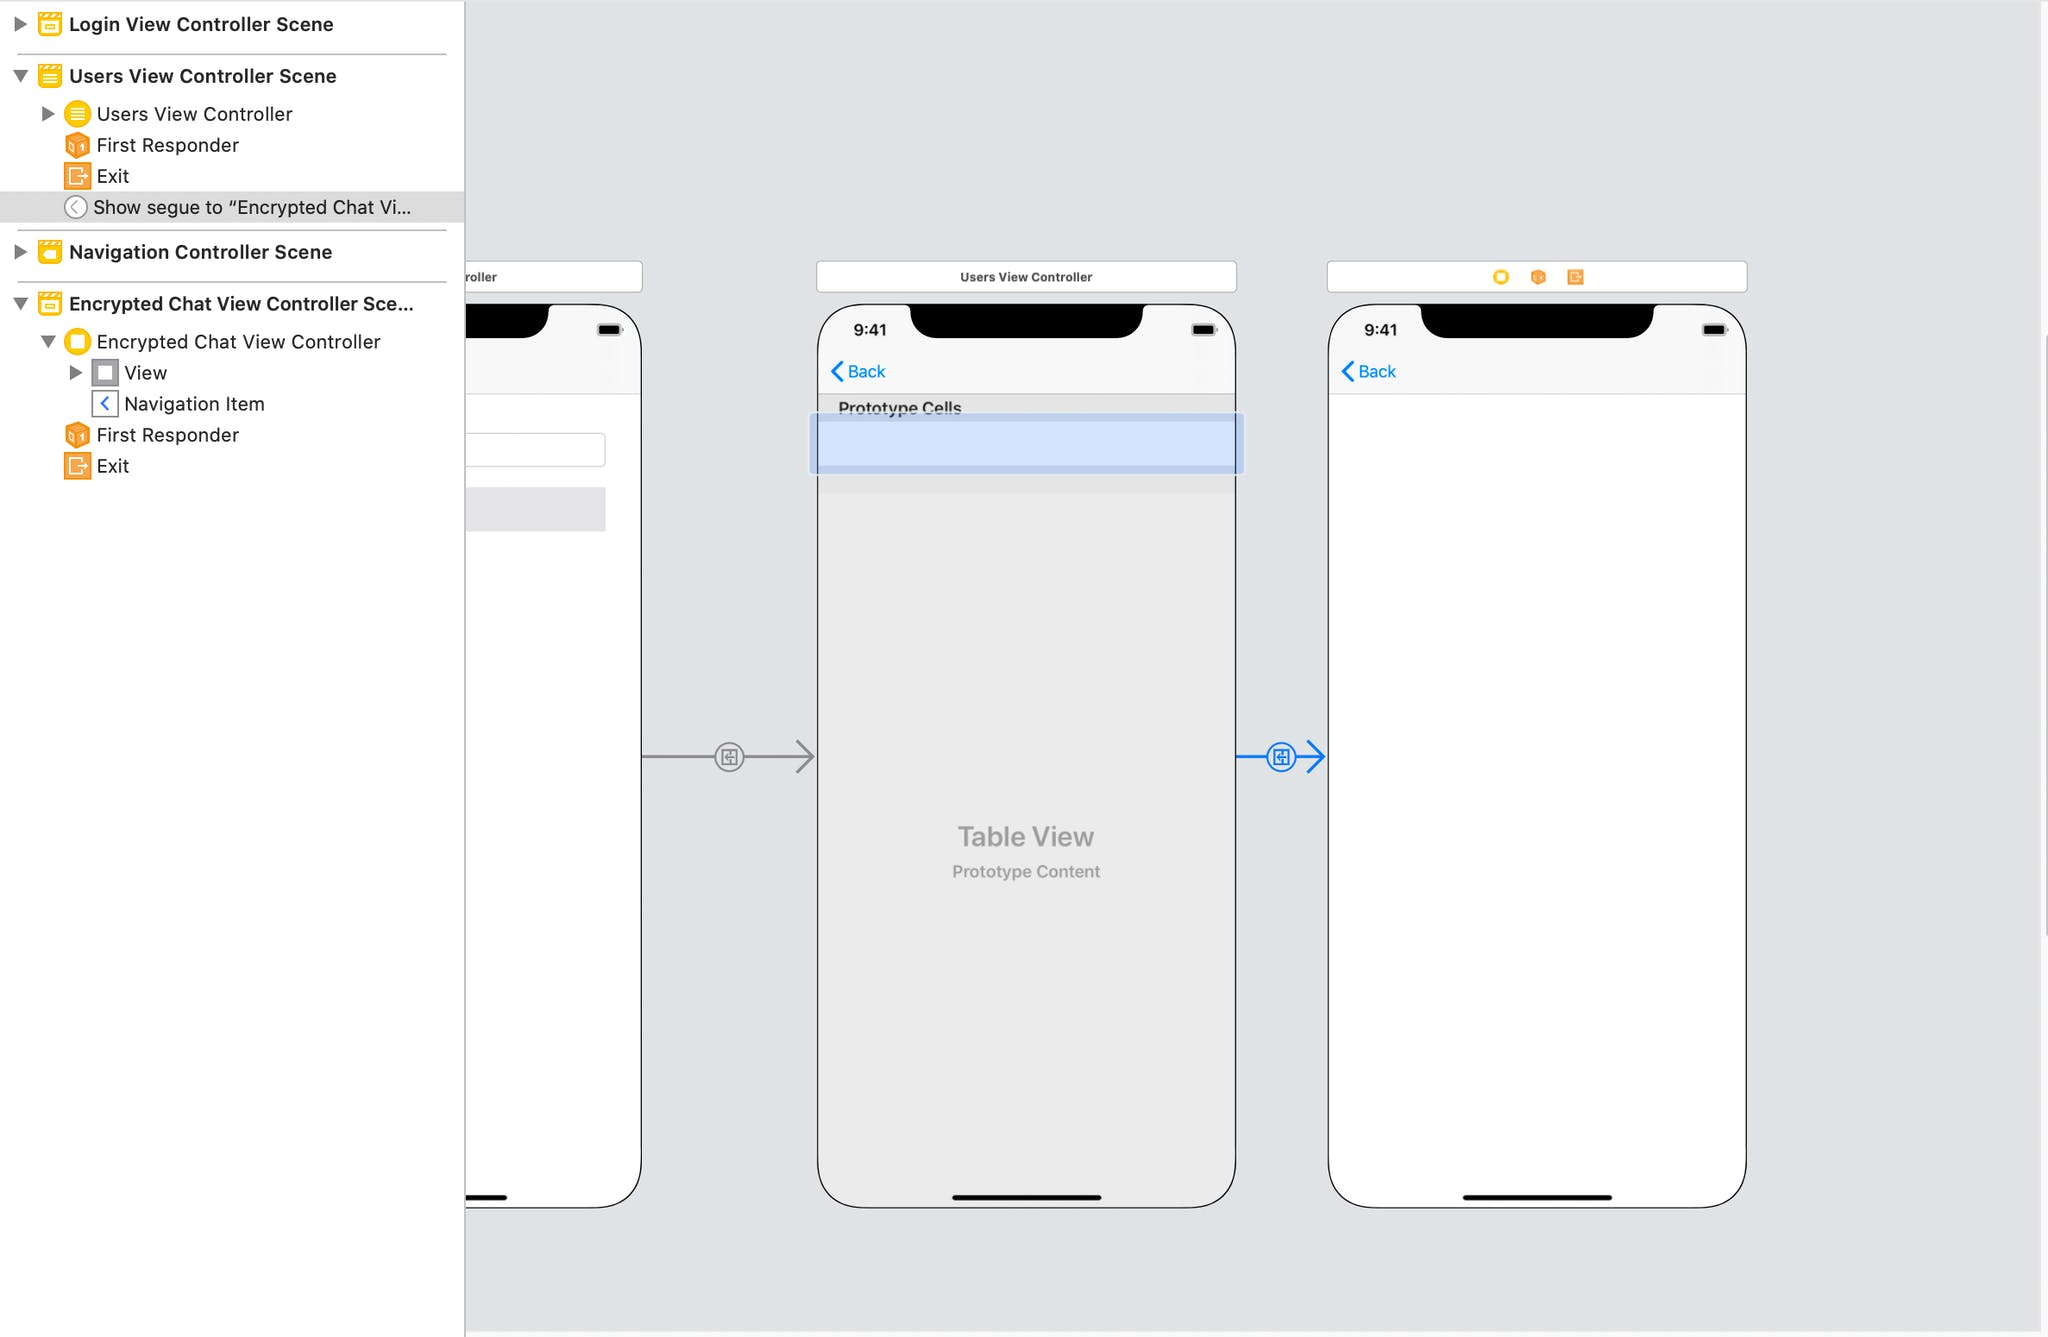 Image shows the same storyboard, now highlighting the segue between the users and encrypted chat controller